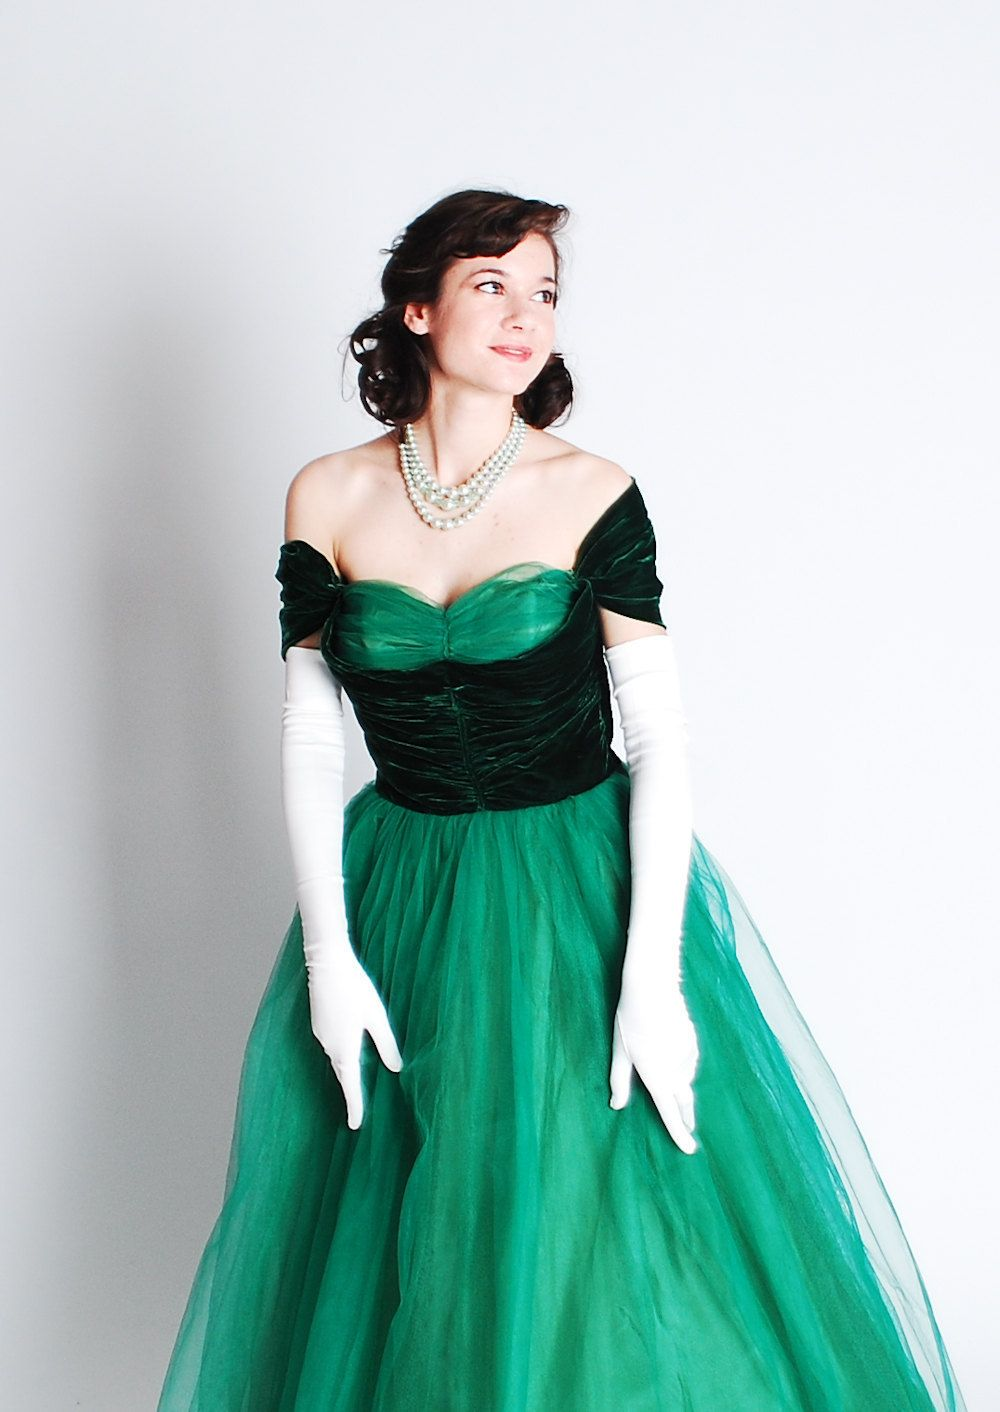 Vintage 1940s Formal Dress 40s Prom Gown Emerald Green Etsy Formal Dresses Evening Dresses Vintage Prom Gown [ 1412 x 1000 Pixel ]